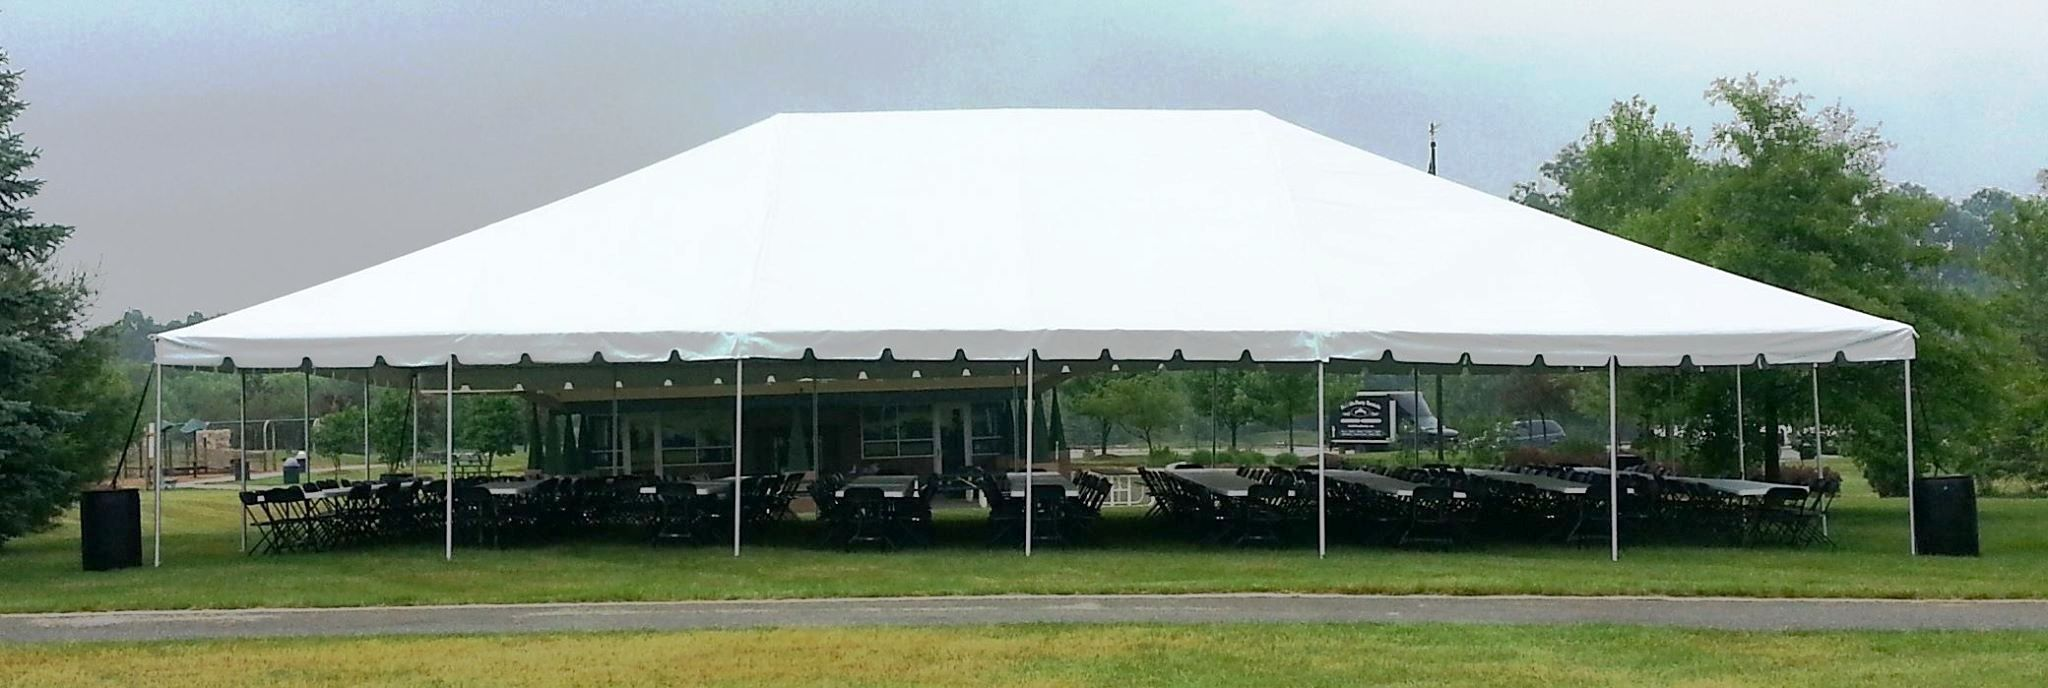 Great American Tent Co. – A company offering commercial grade tents and party equipment rental services